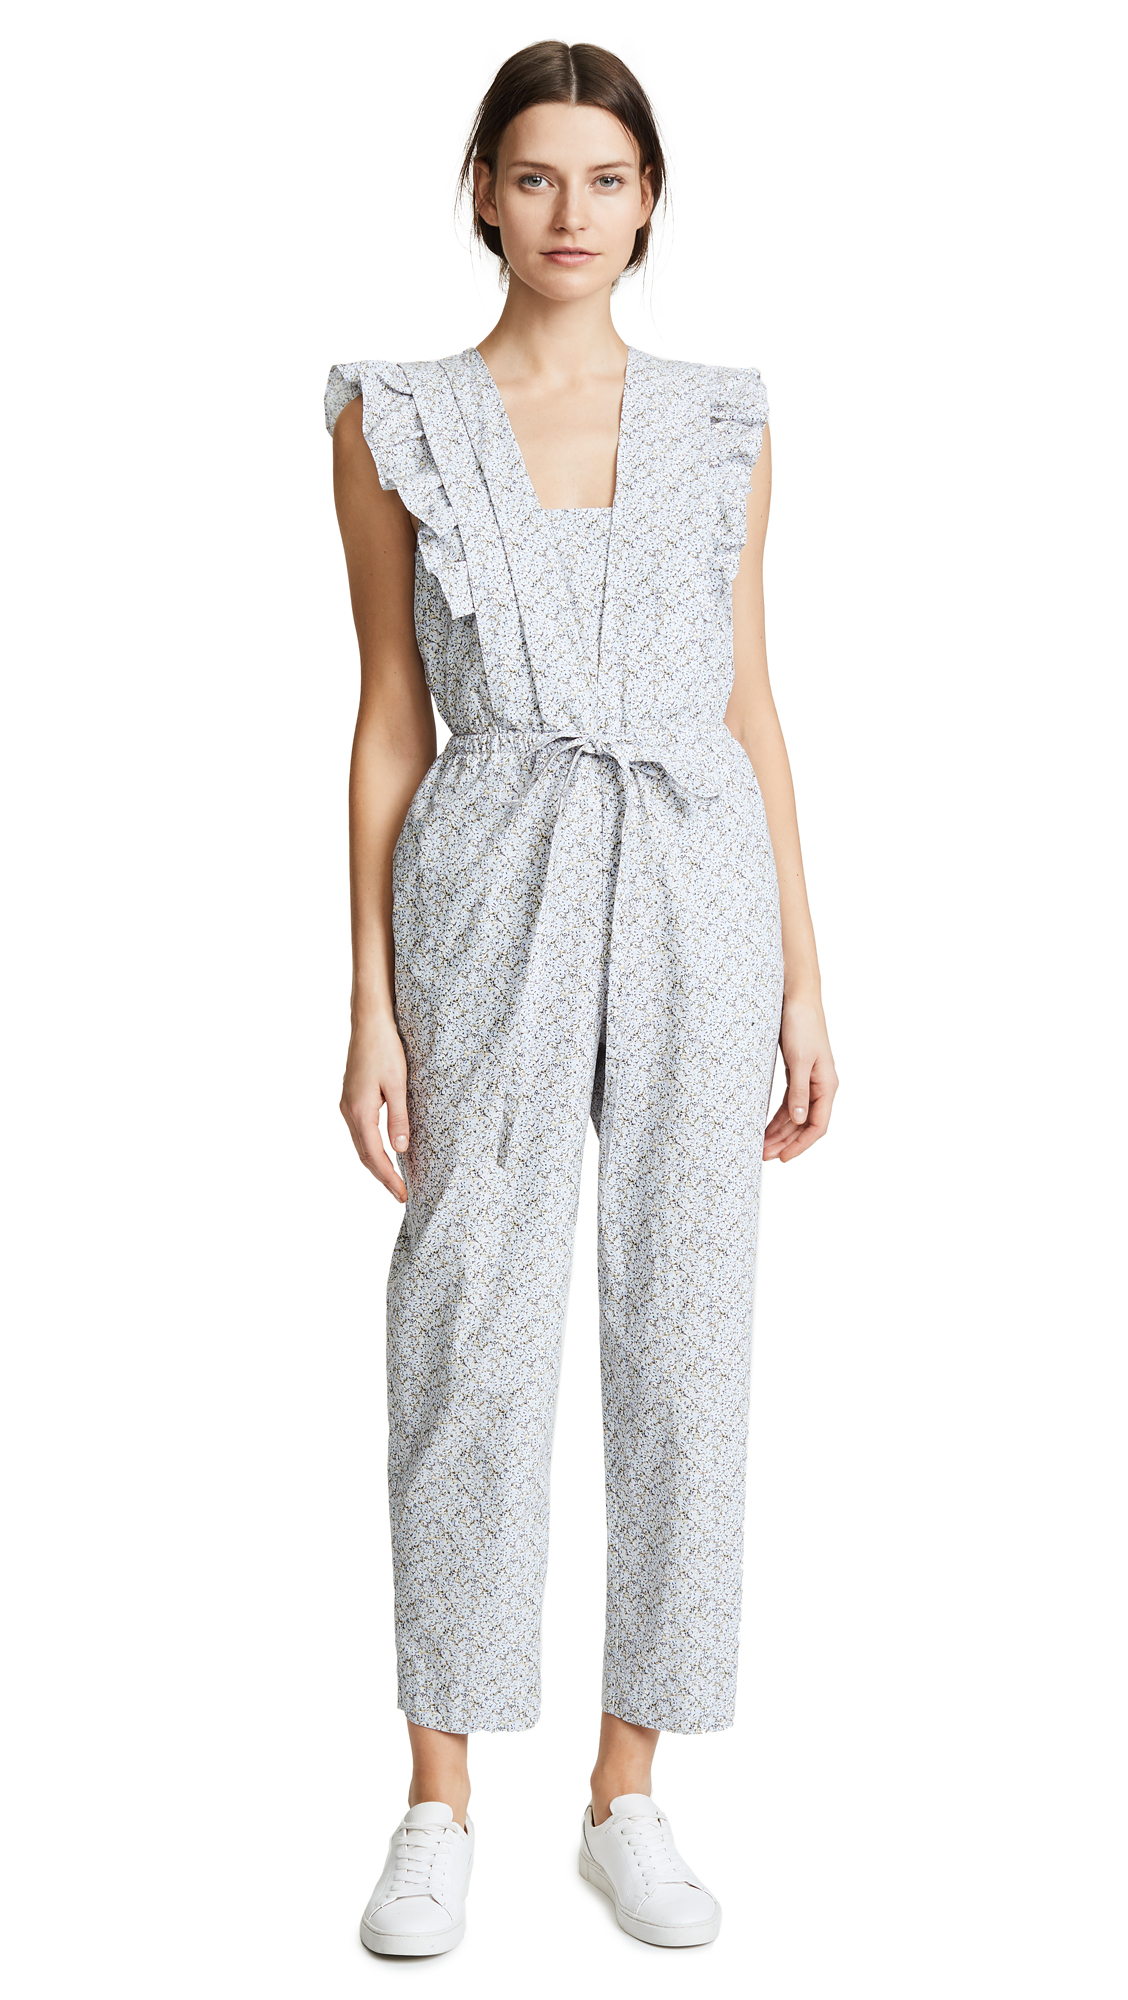 La Vie Rebecca Taylor Meadow Floral Jumpsuit In Iris Combo